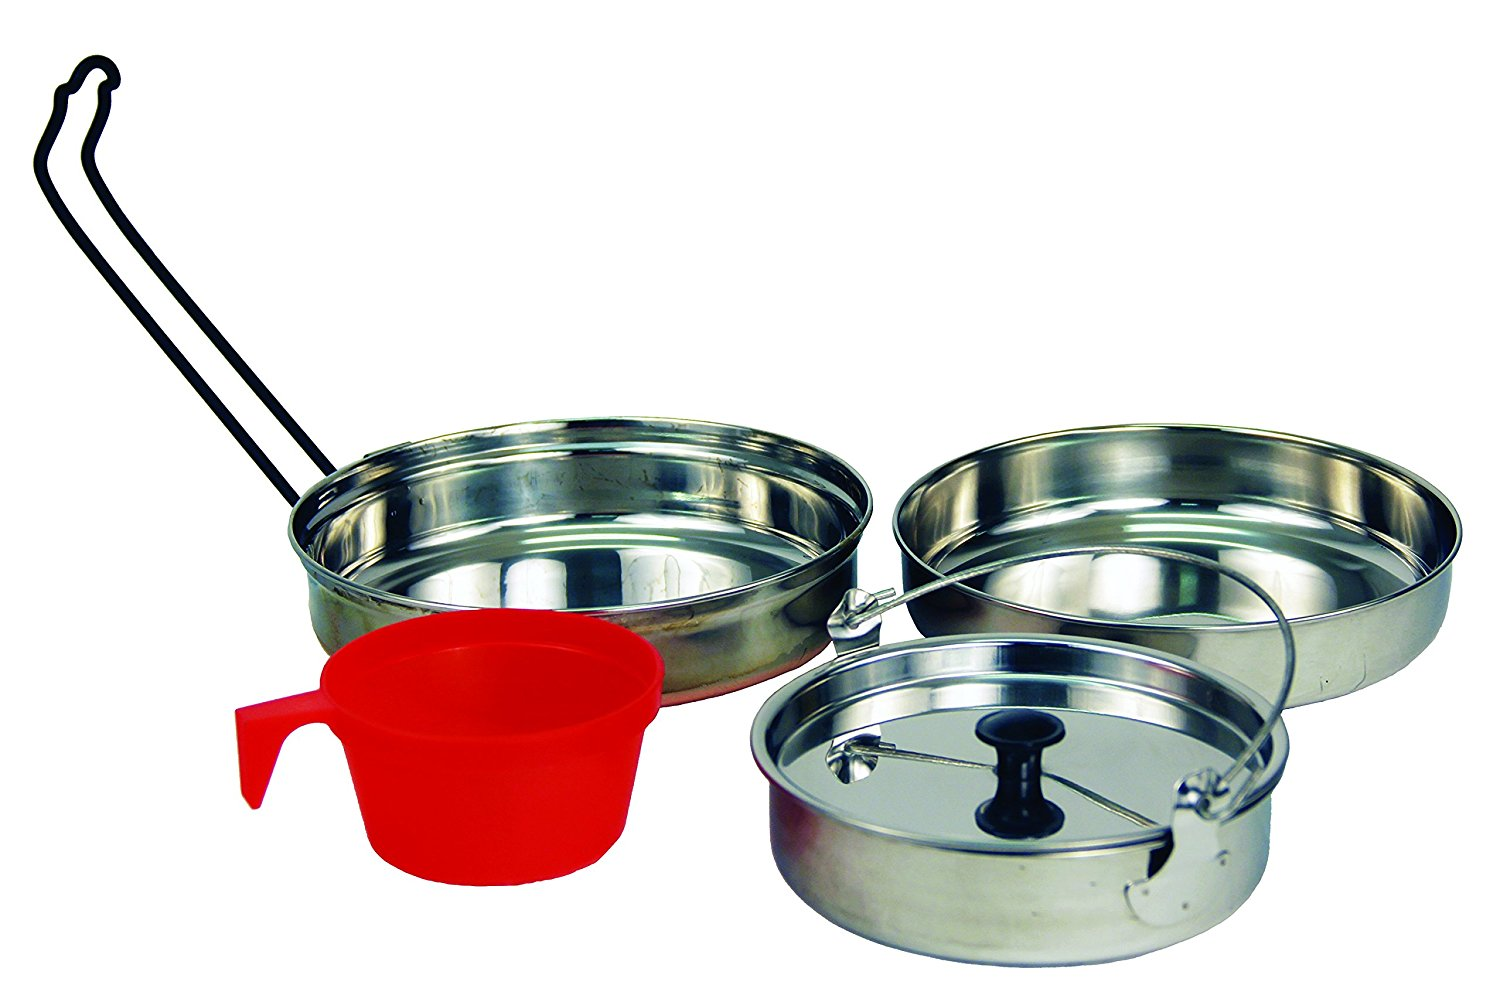 5 pc Stainless Steel Camping Cookware Outdoor Mess Kit, High Quality Polished Stainless Steel 5 Pc. Cooking... by